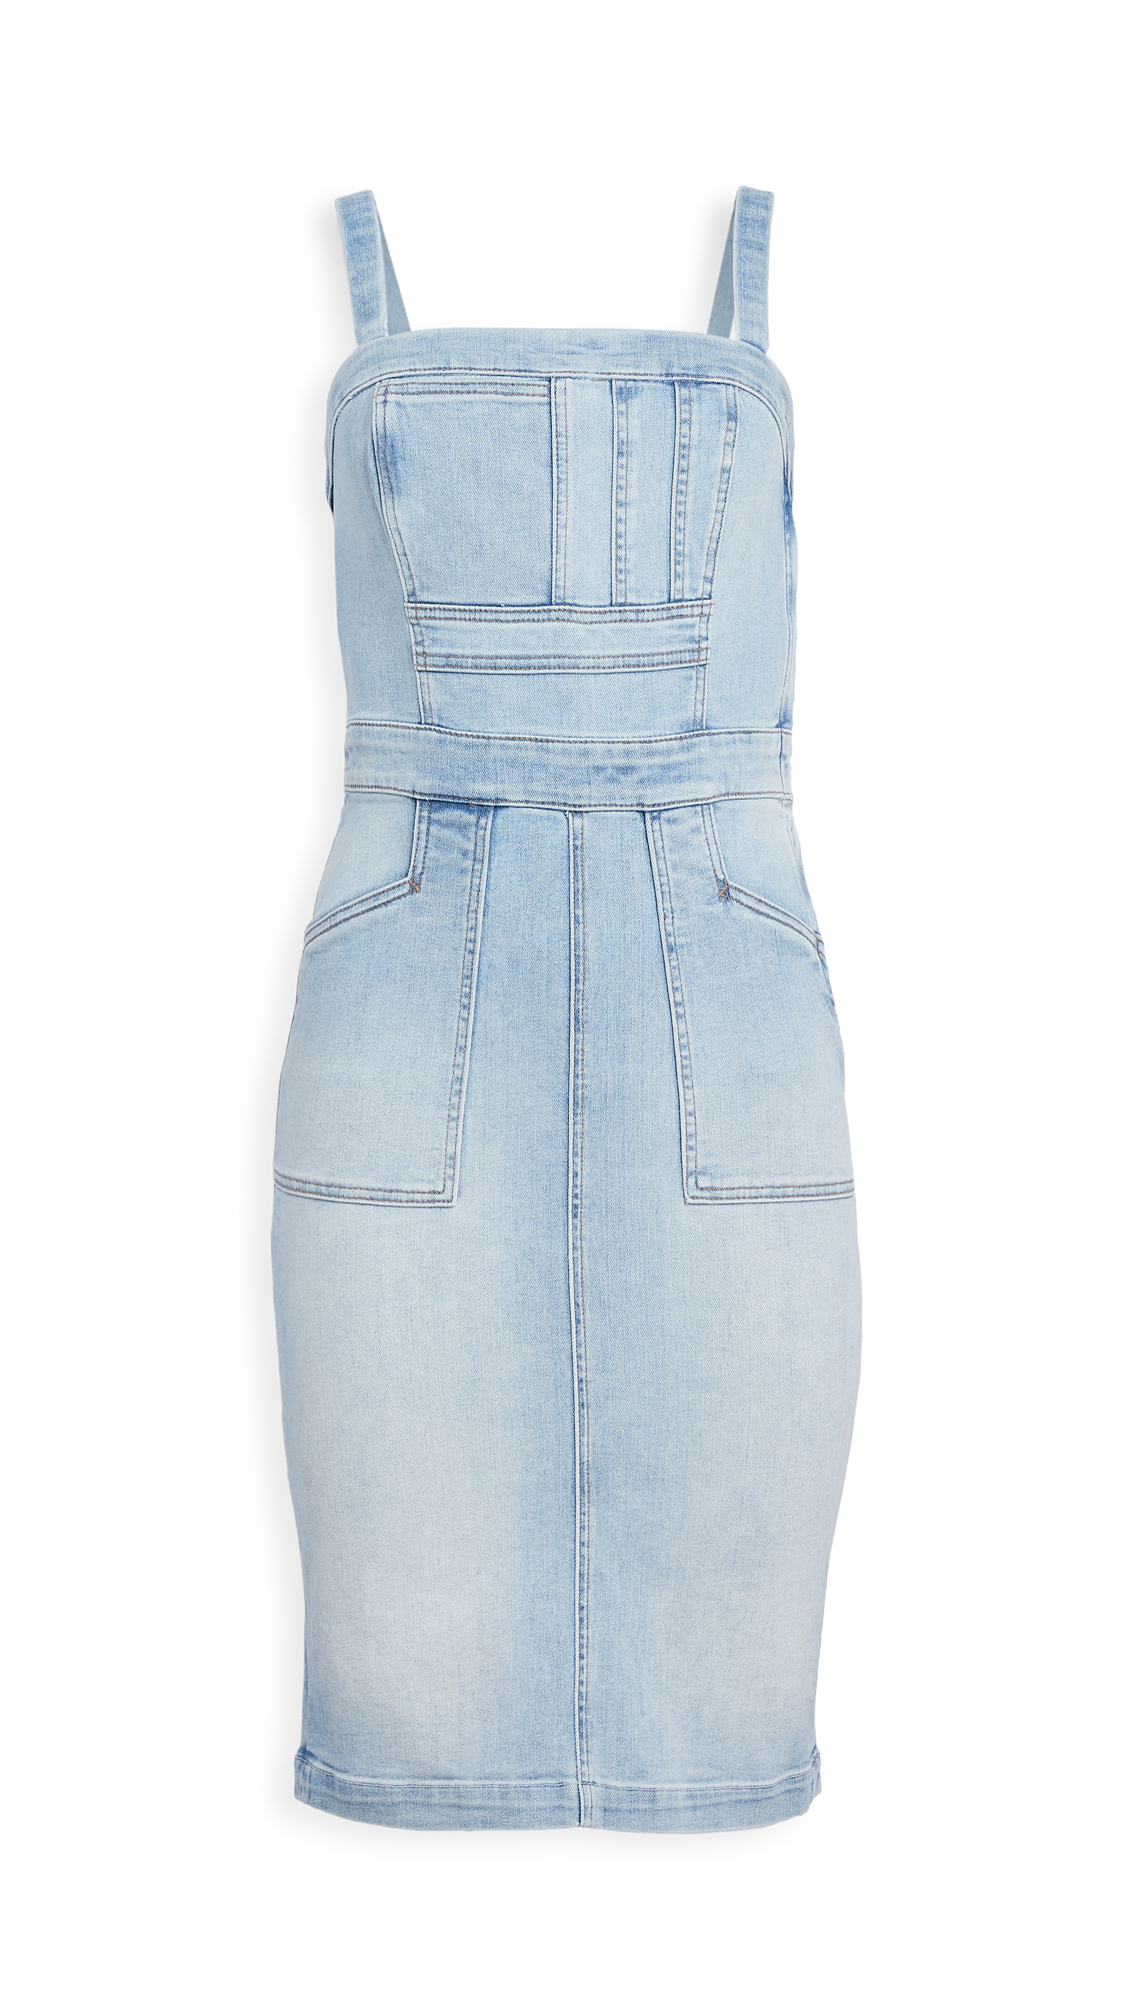 MOTHER Pocket Hustler Overall Dress